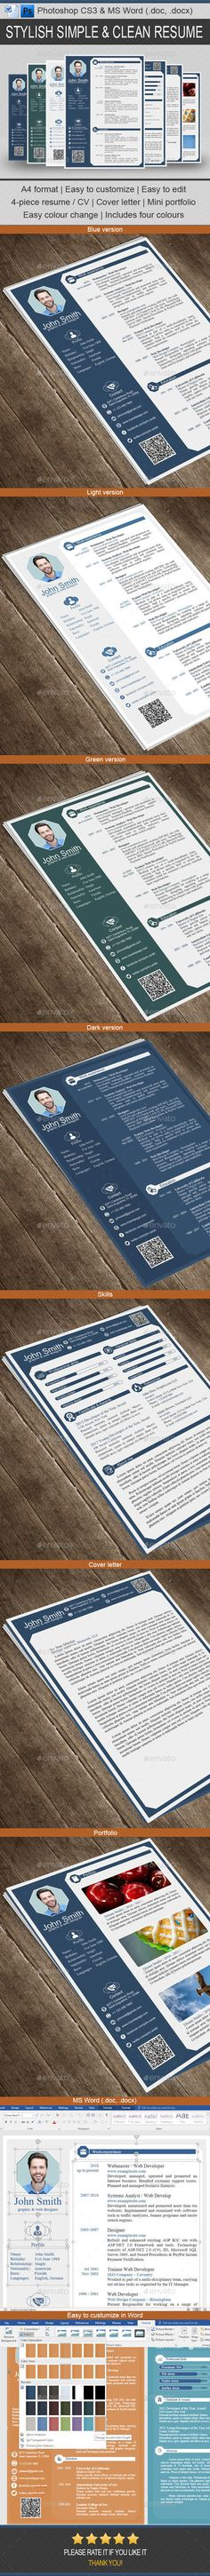 Professional Resume / CV Template PSD. Download here: http://graphicriver.net/item/professional-resume-cv/14882309?ref=ksioks